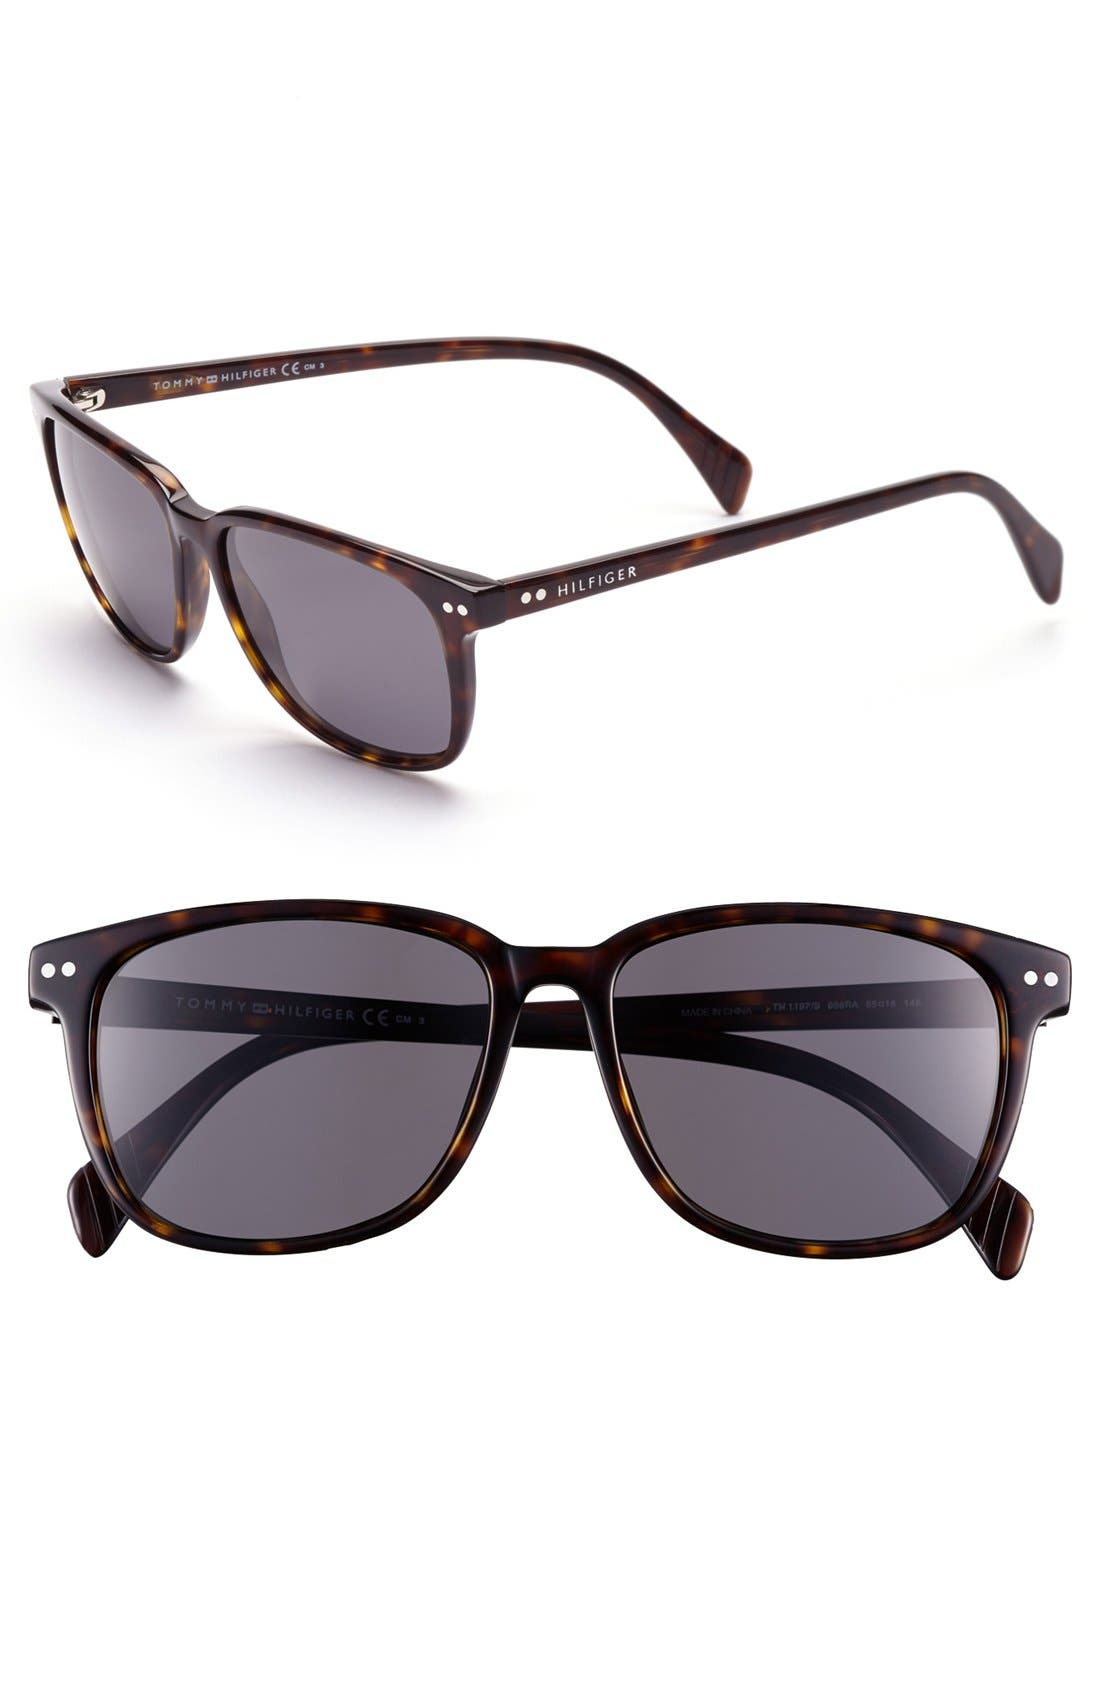 Main Image - Tommy Hilfiger 55mm Retro Sunglasses